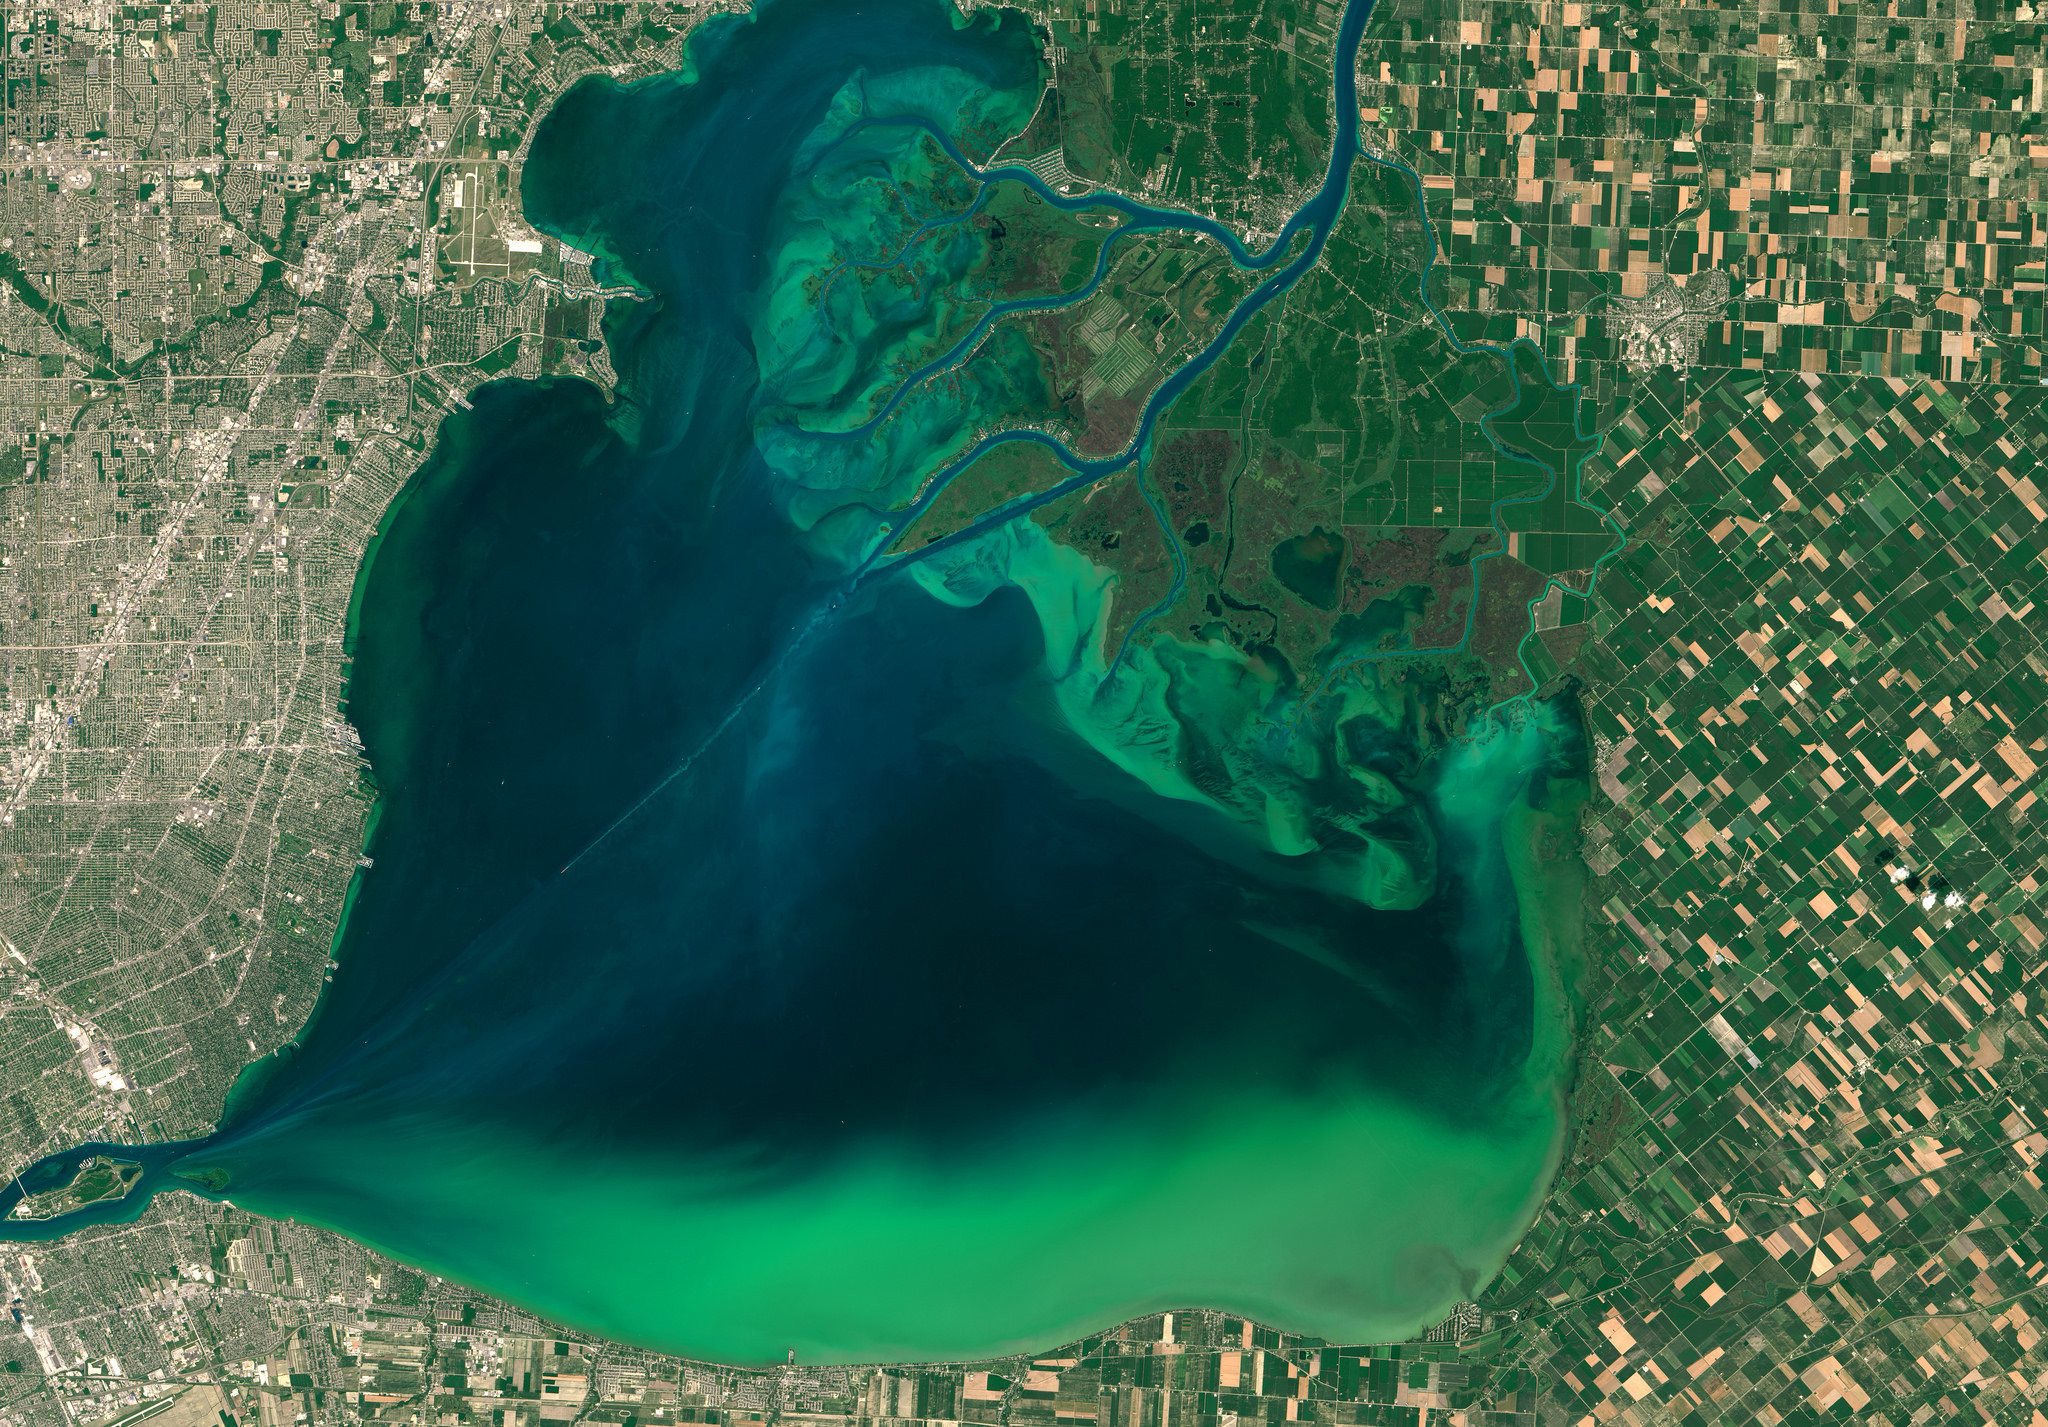 An algal bloom seen in Lake St. Clair, between Michigan and Ontario, in 2015